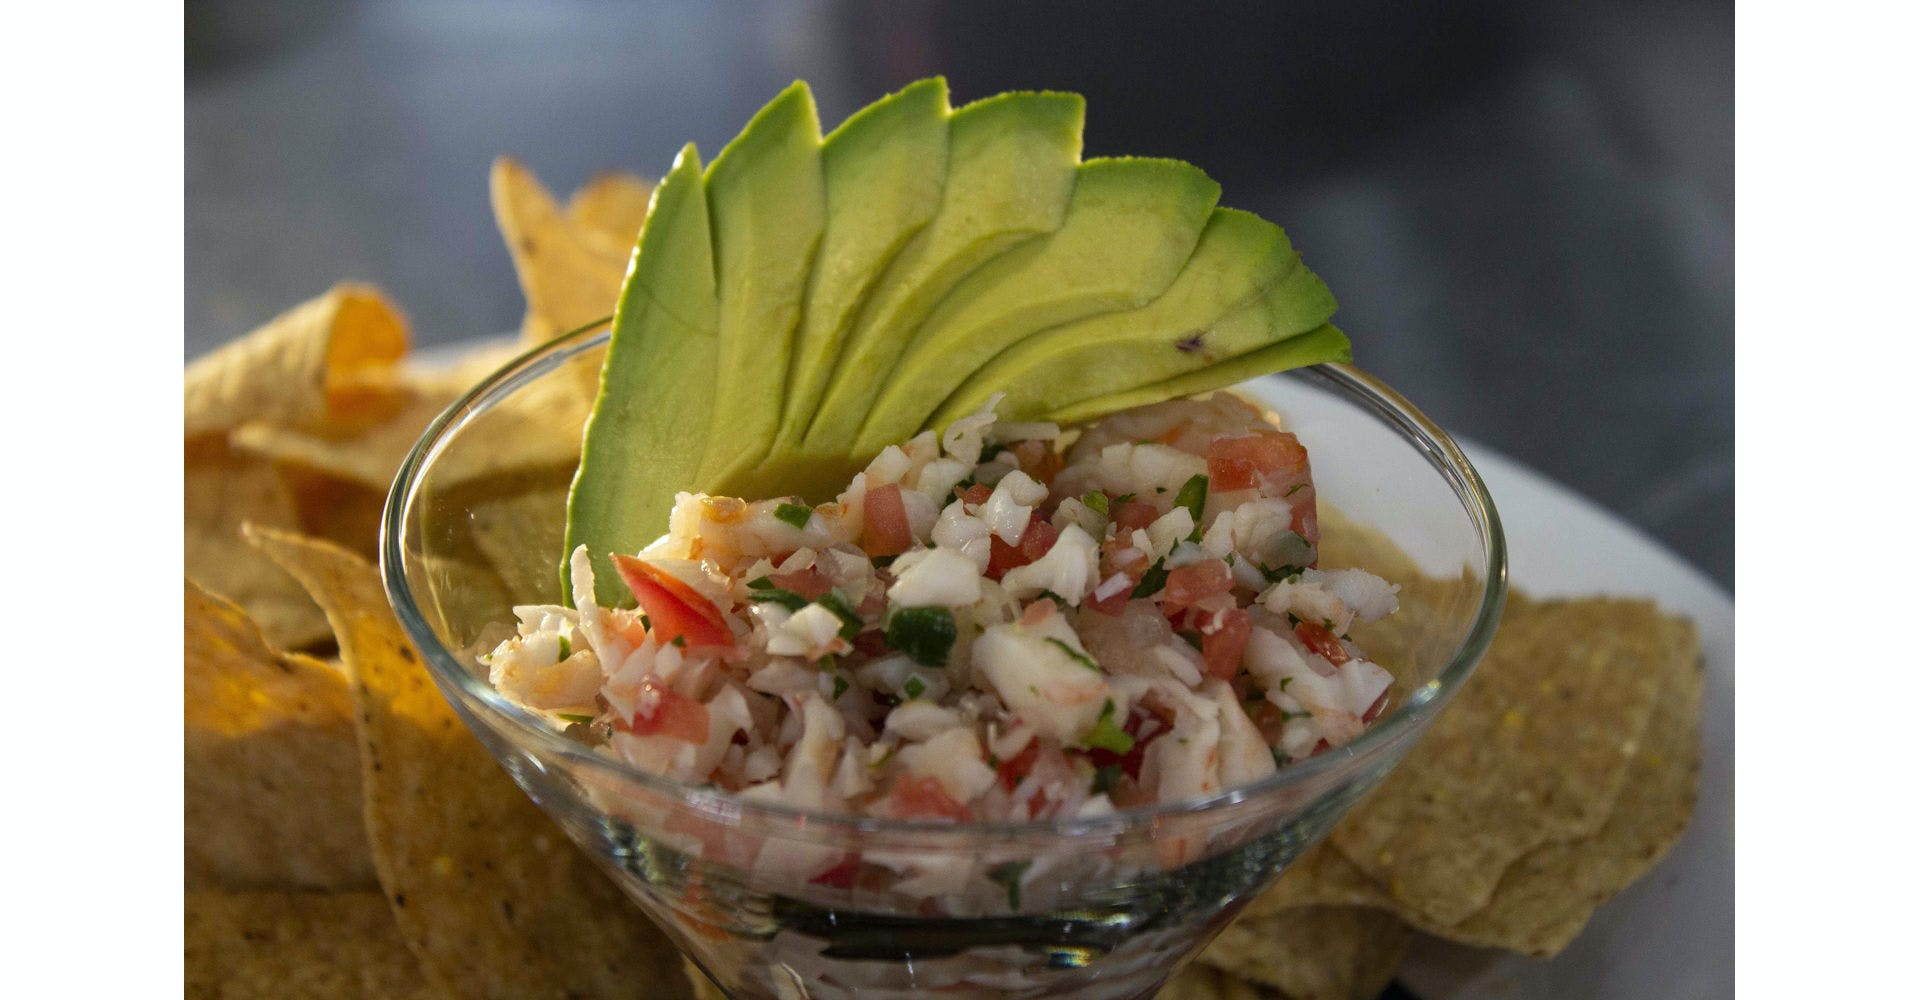 Shrimp Ceviche from Silly Serrano Mexican Restaurant in Eau Claire, WI